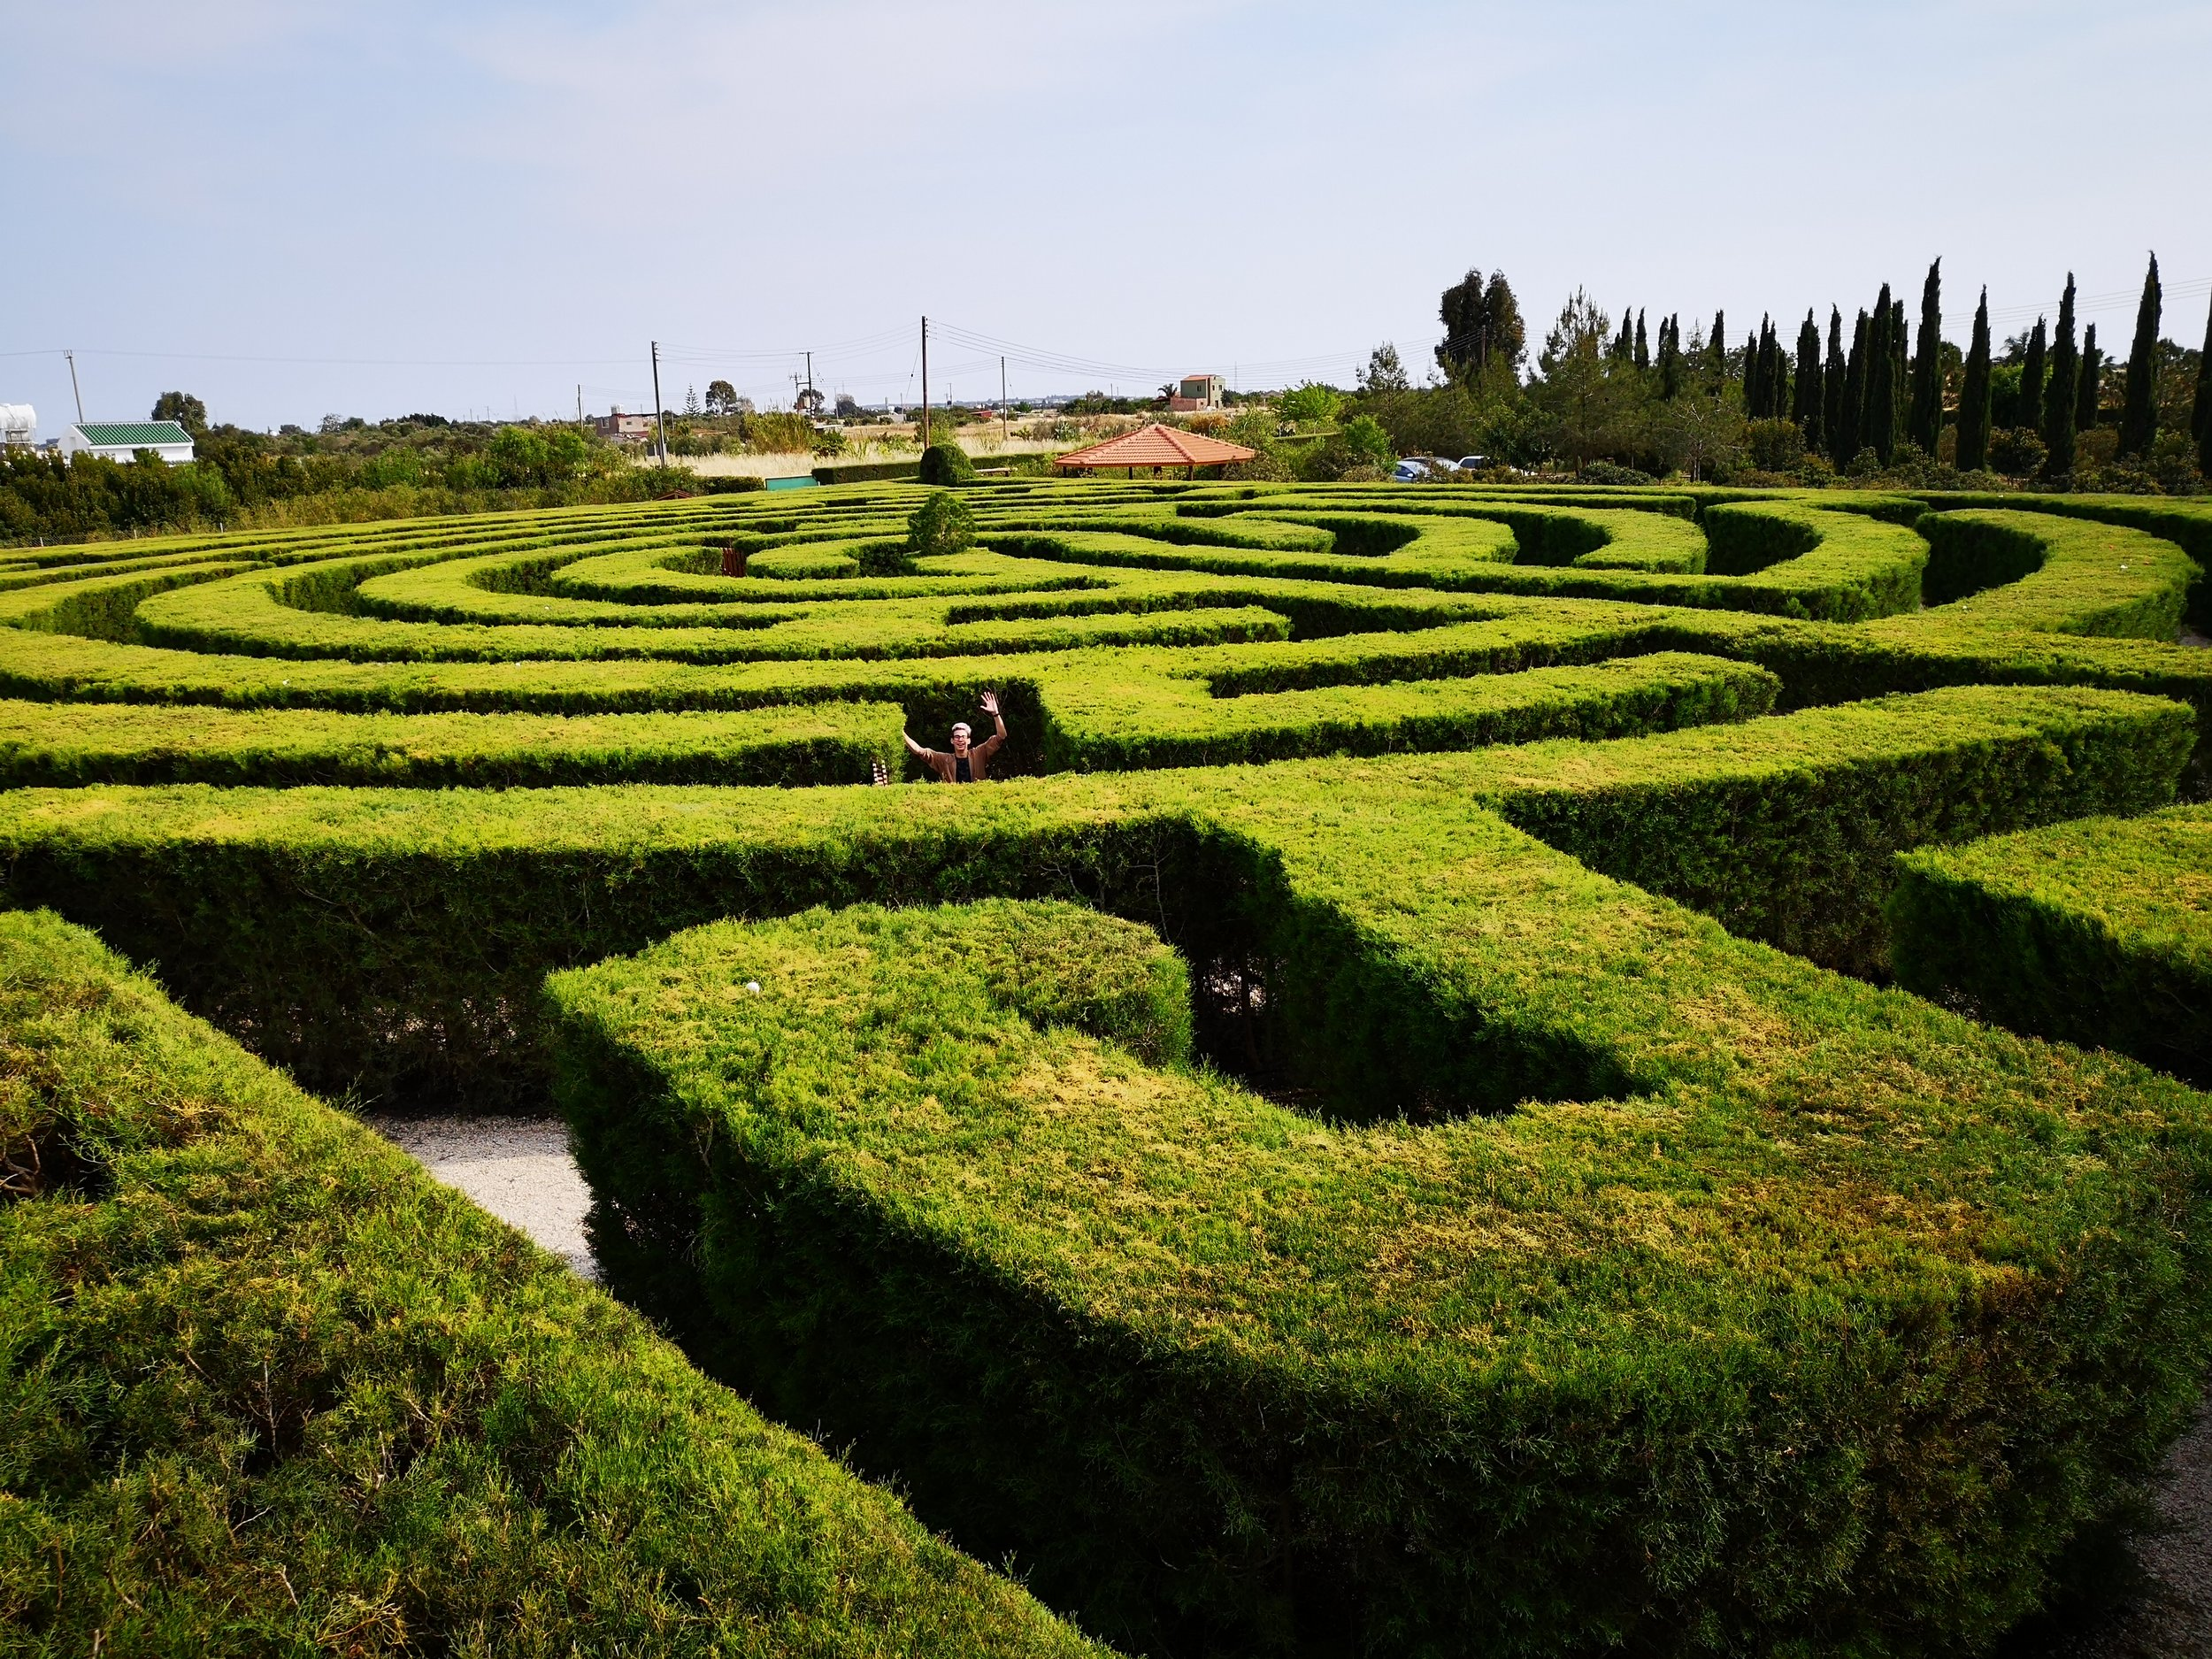 Lose yourself in the CyHerbia's green maze| © CyHerbia